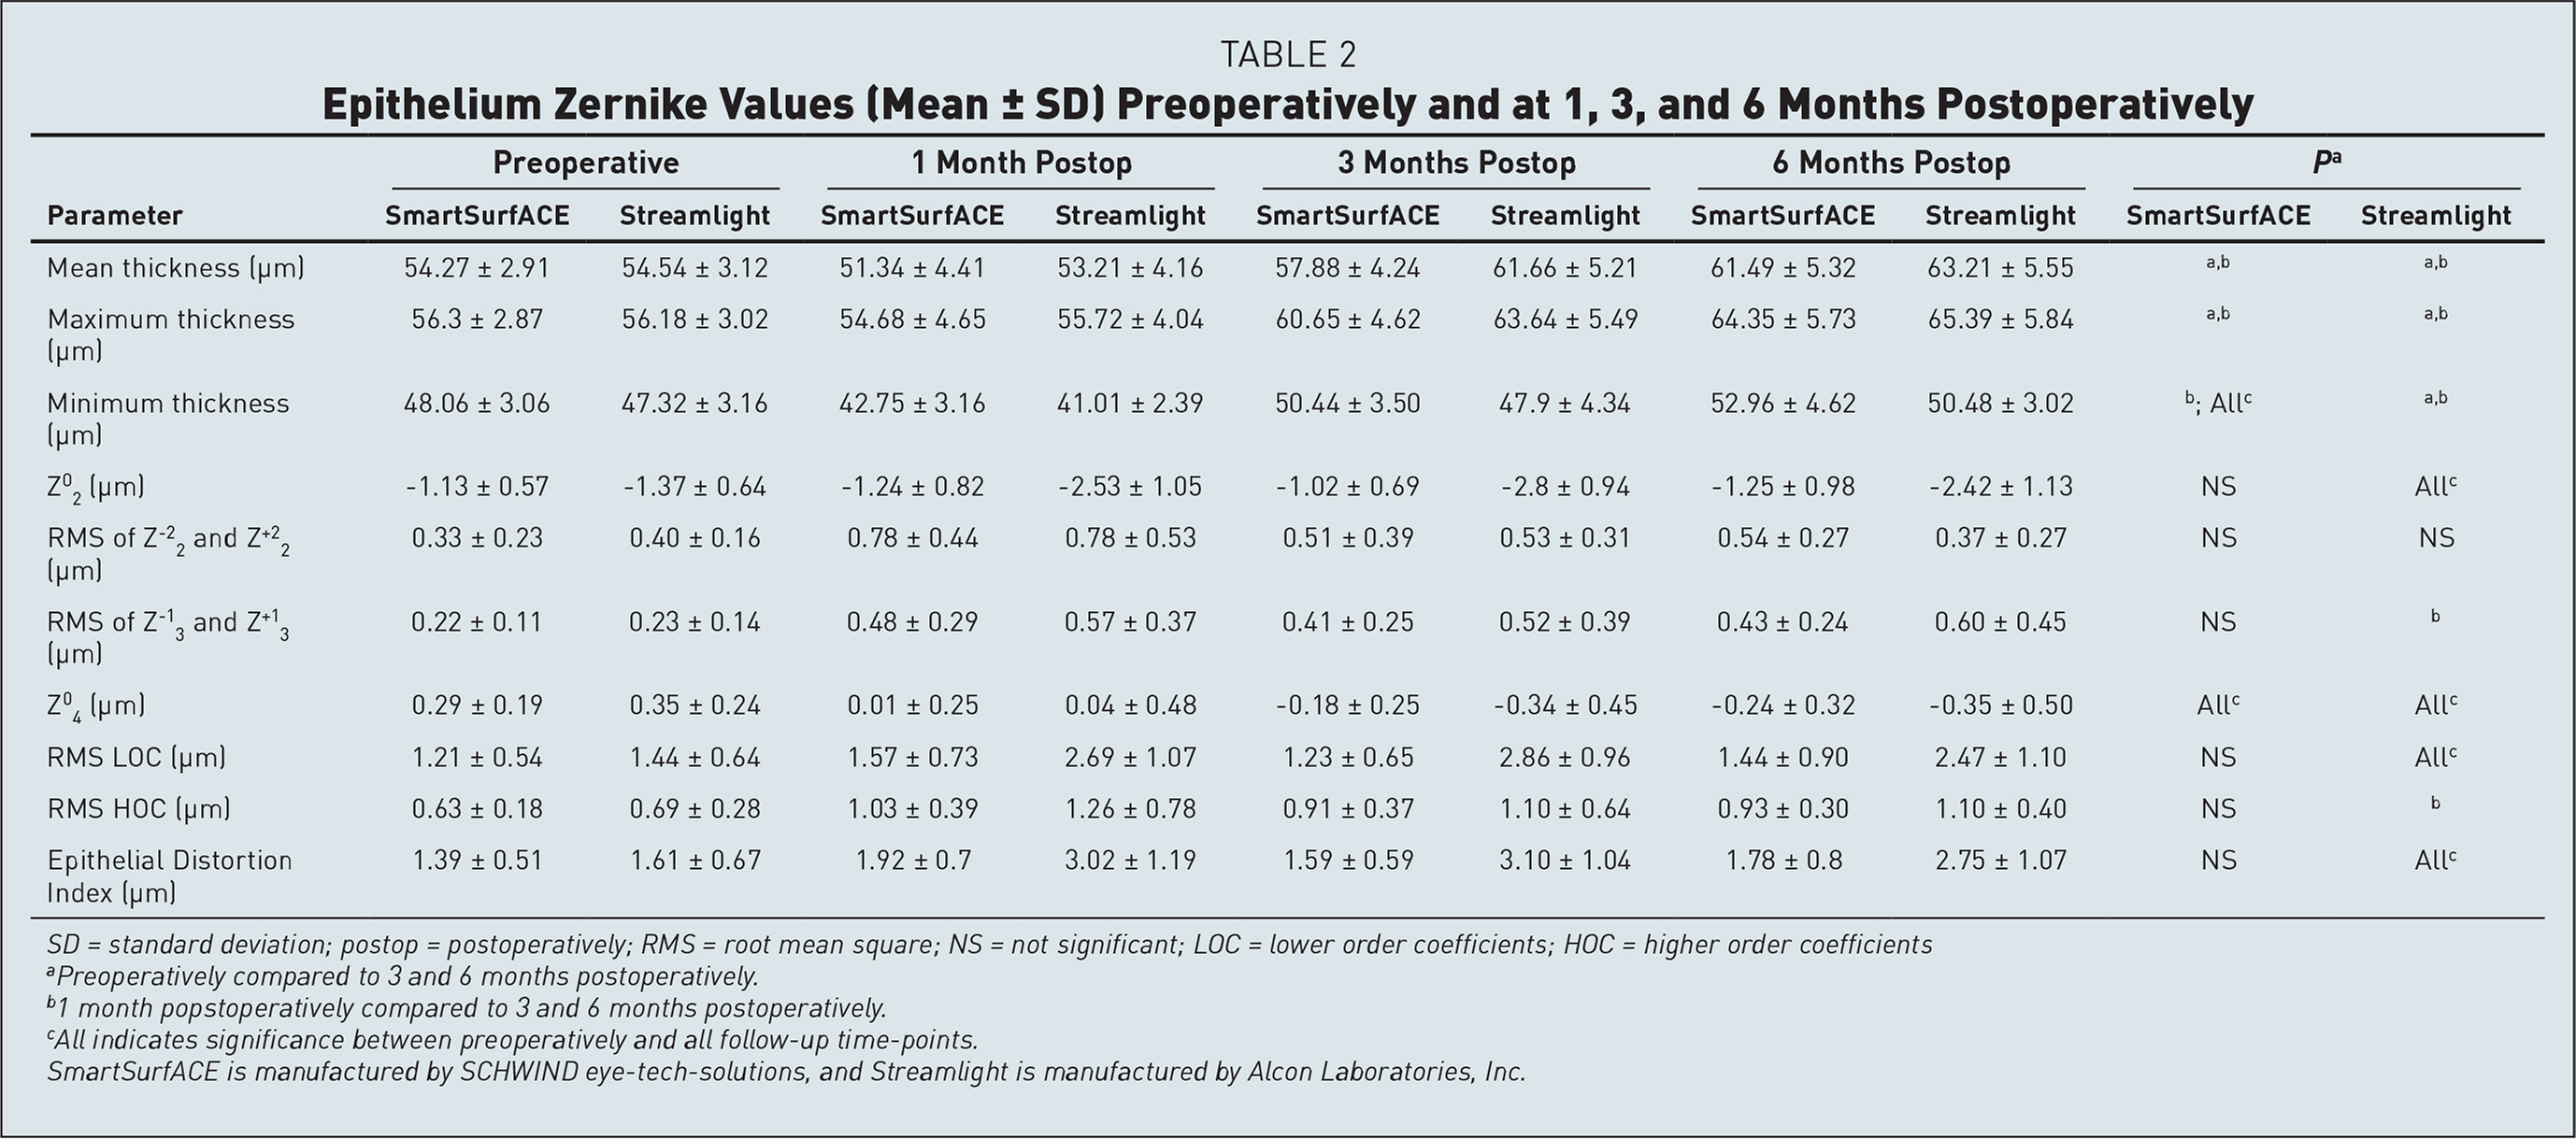 Epithelium Zernike Values (Mean ± SD) Preoperatively and at 1, 3, and 6 Months Postoperatively